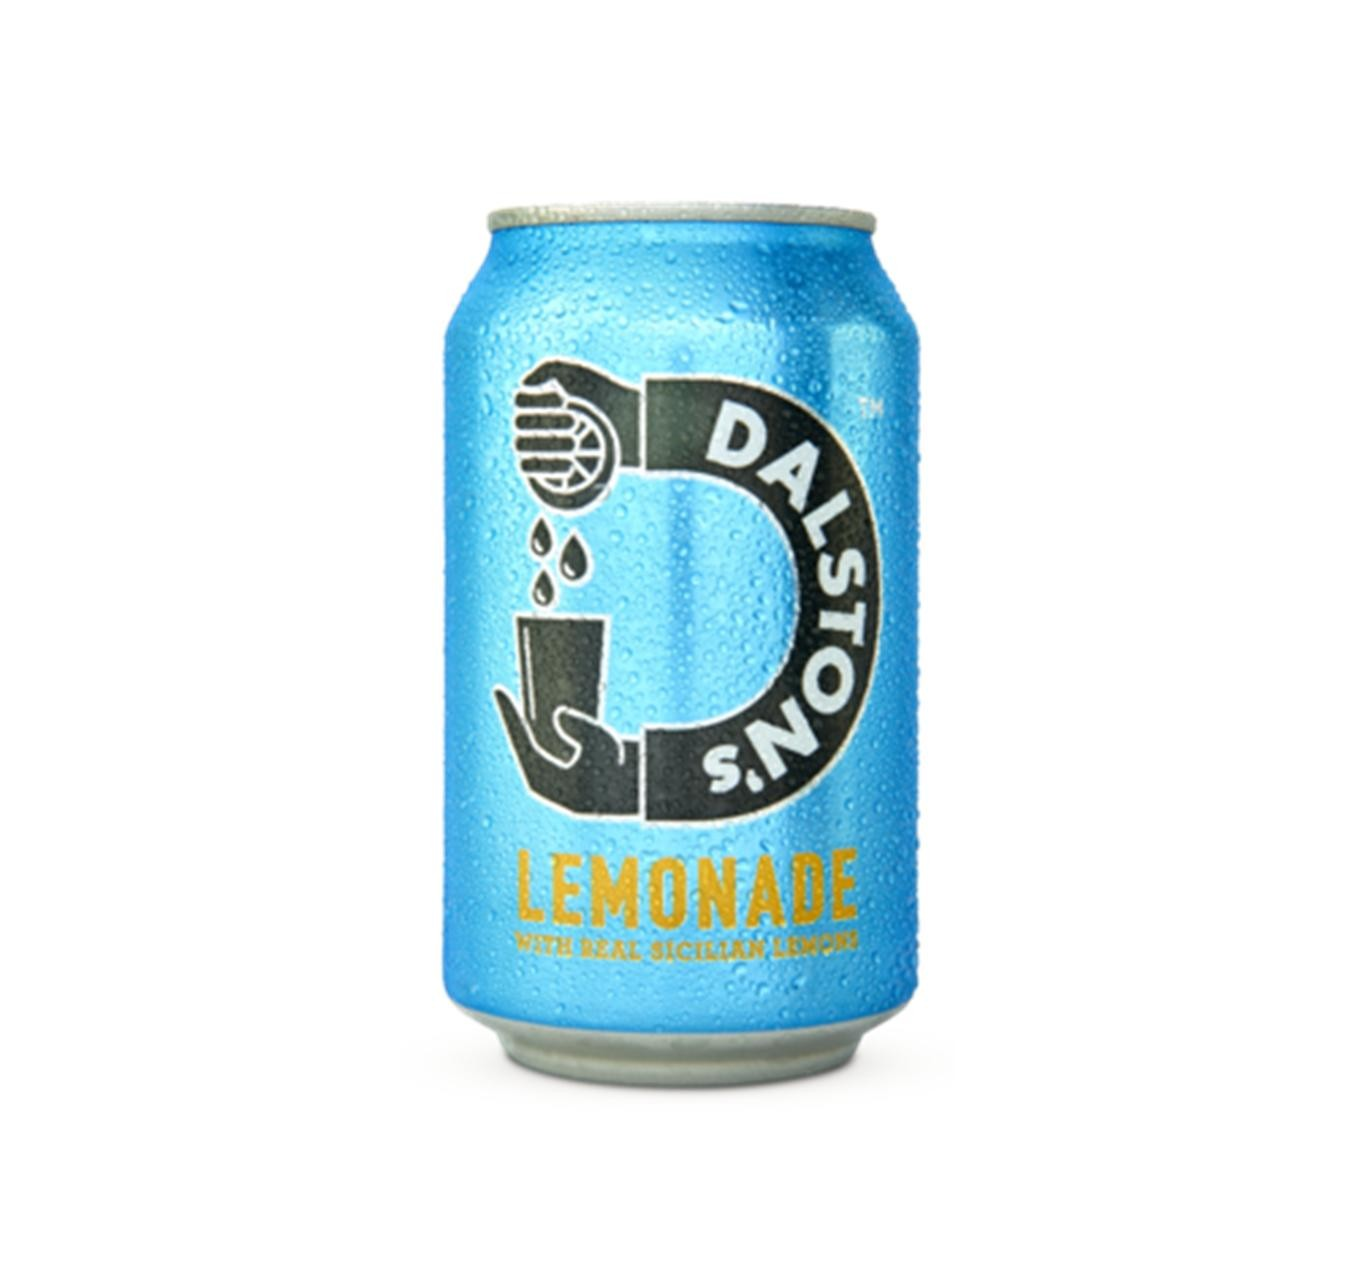 Dalston's Lemonade 330ml